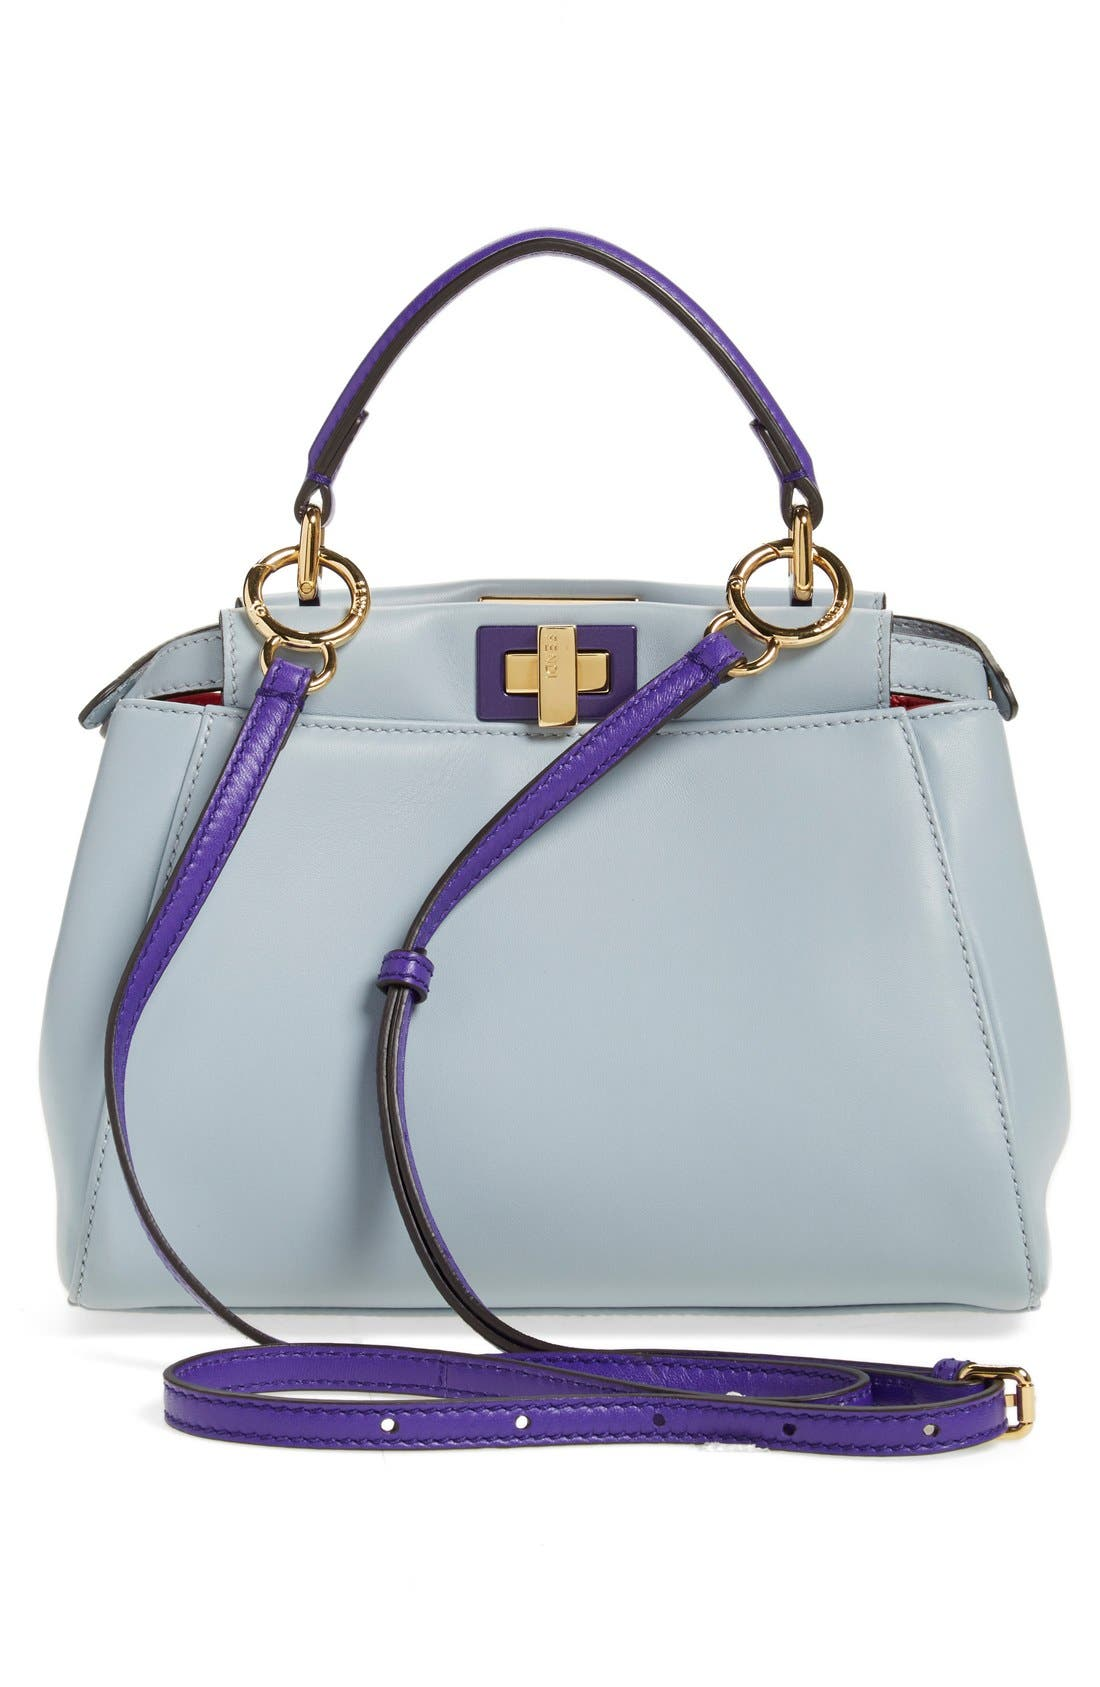 Alternate Image 1 Selected - Fendi 'Mini Peekaboo' Colorblock Leather Bag